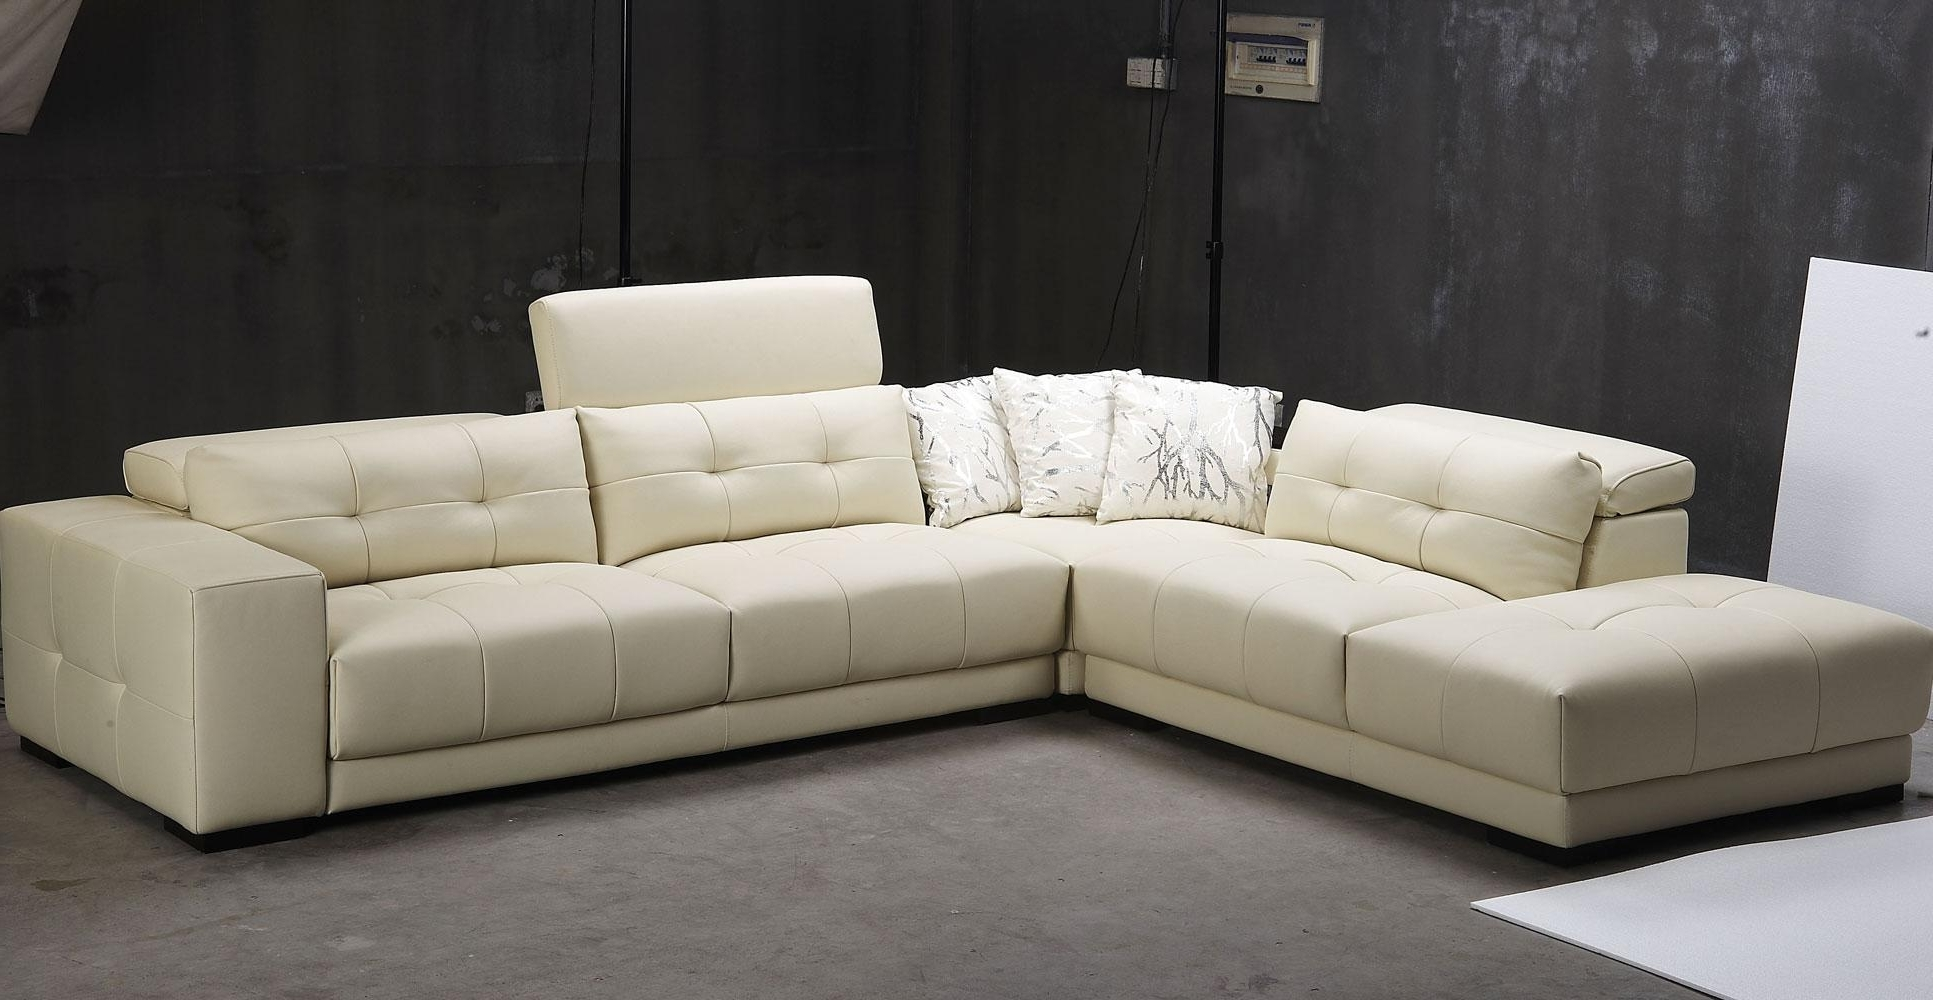 Recent 3 Piece Sectional Sleeper Sofas With Regard To Best Modern 3 Piece White Leather Sectional Sleeper Sofa With (View 13 of 15)